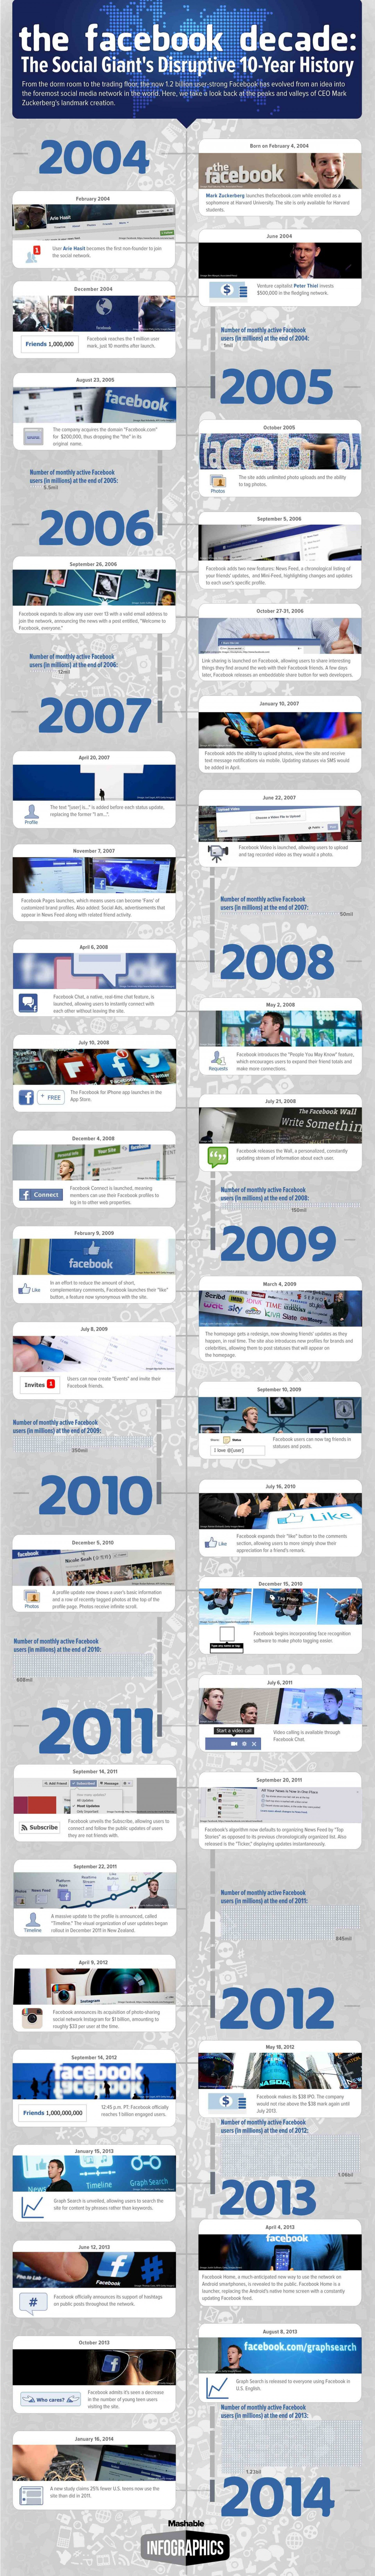 The Facebook Decade Infographic